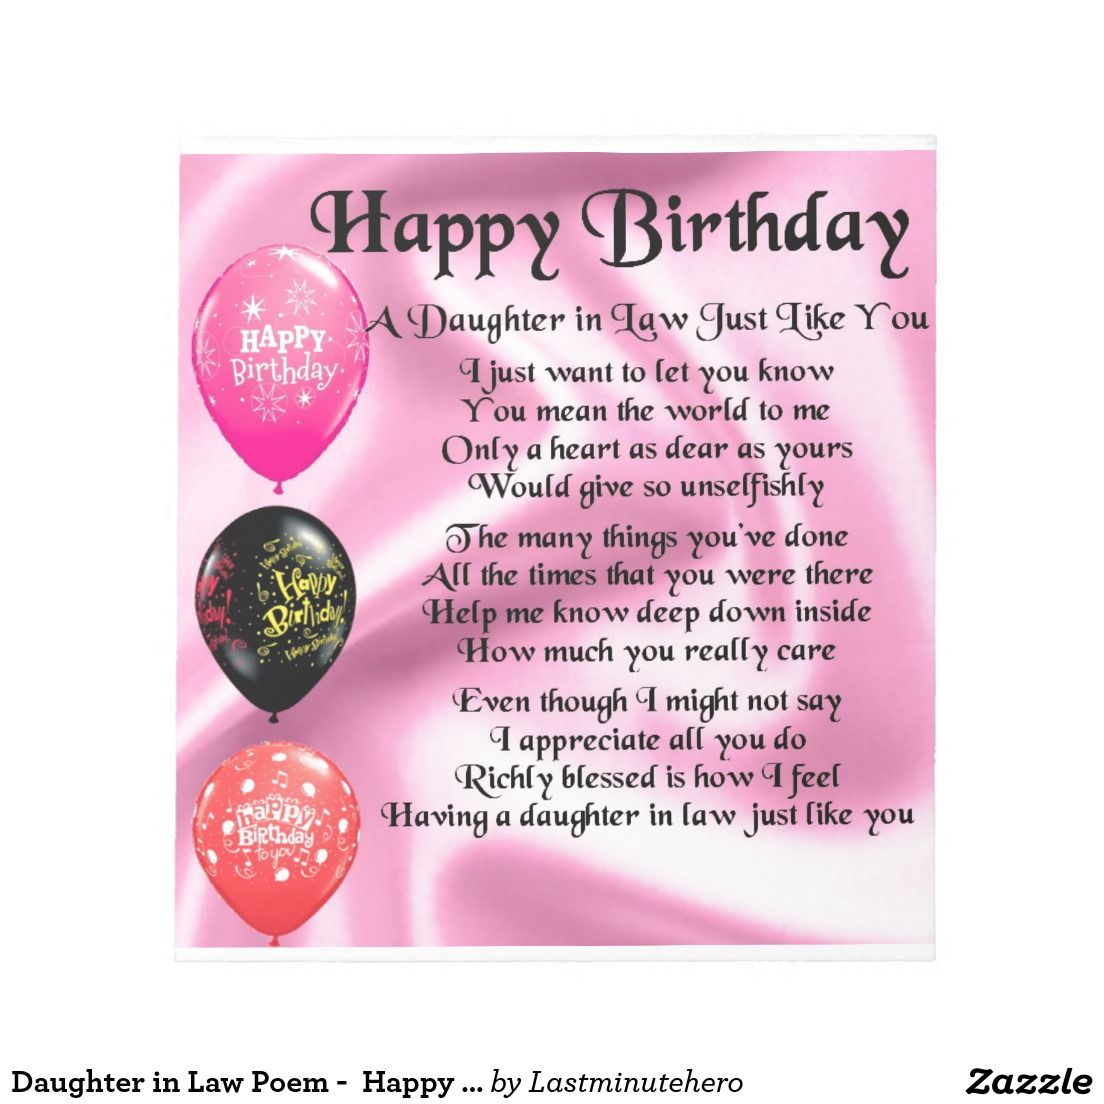 Daughter in Law Poem Happy Birthday Notepad Zazzle.co